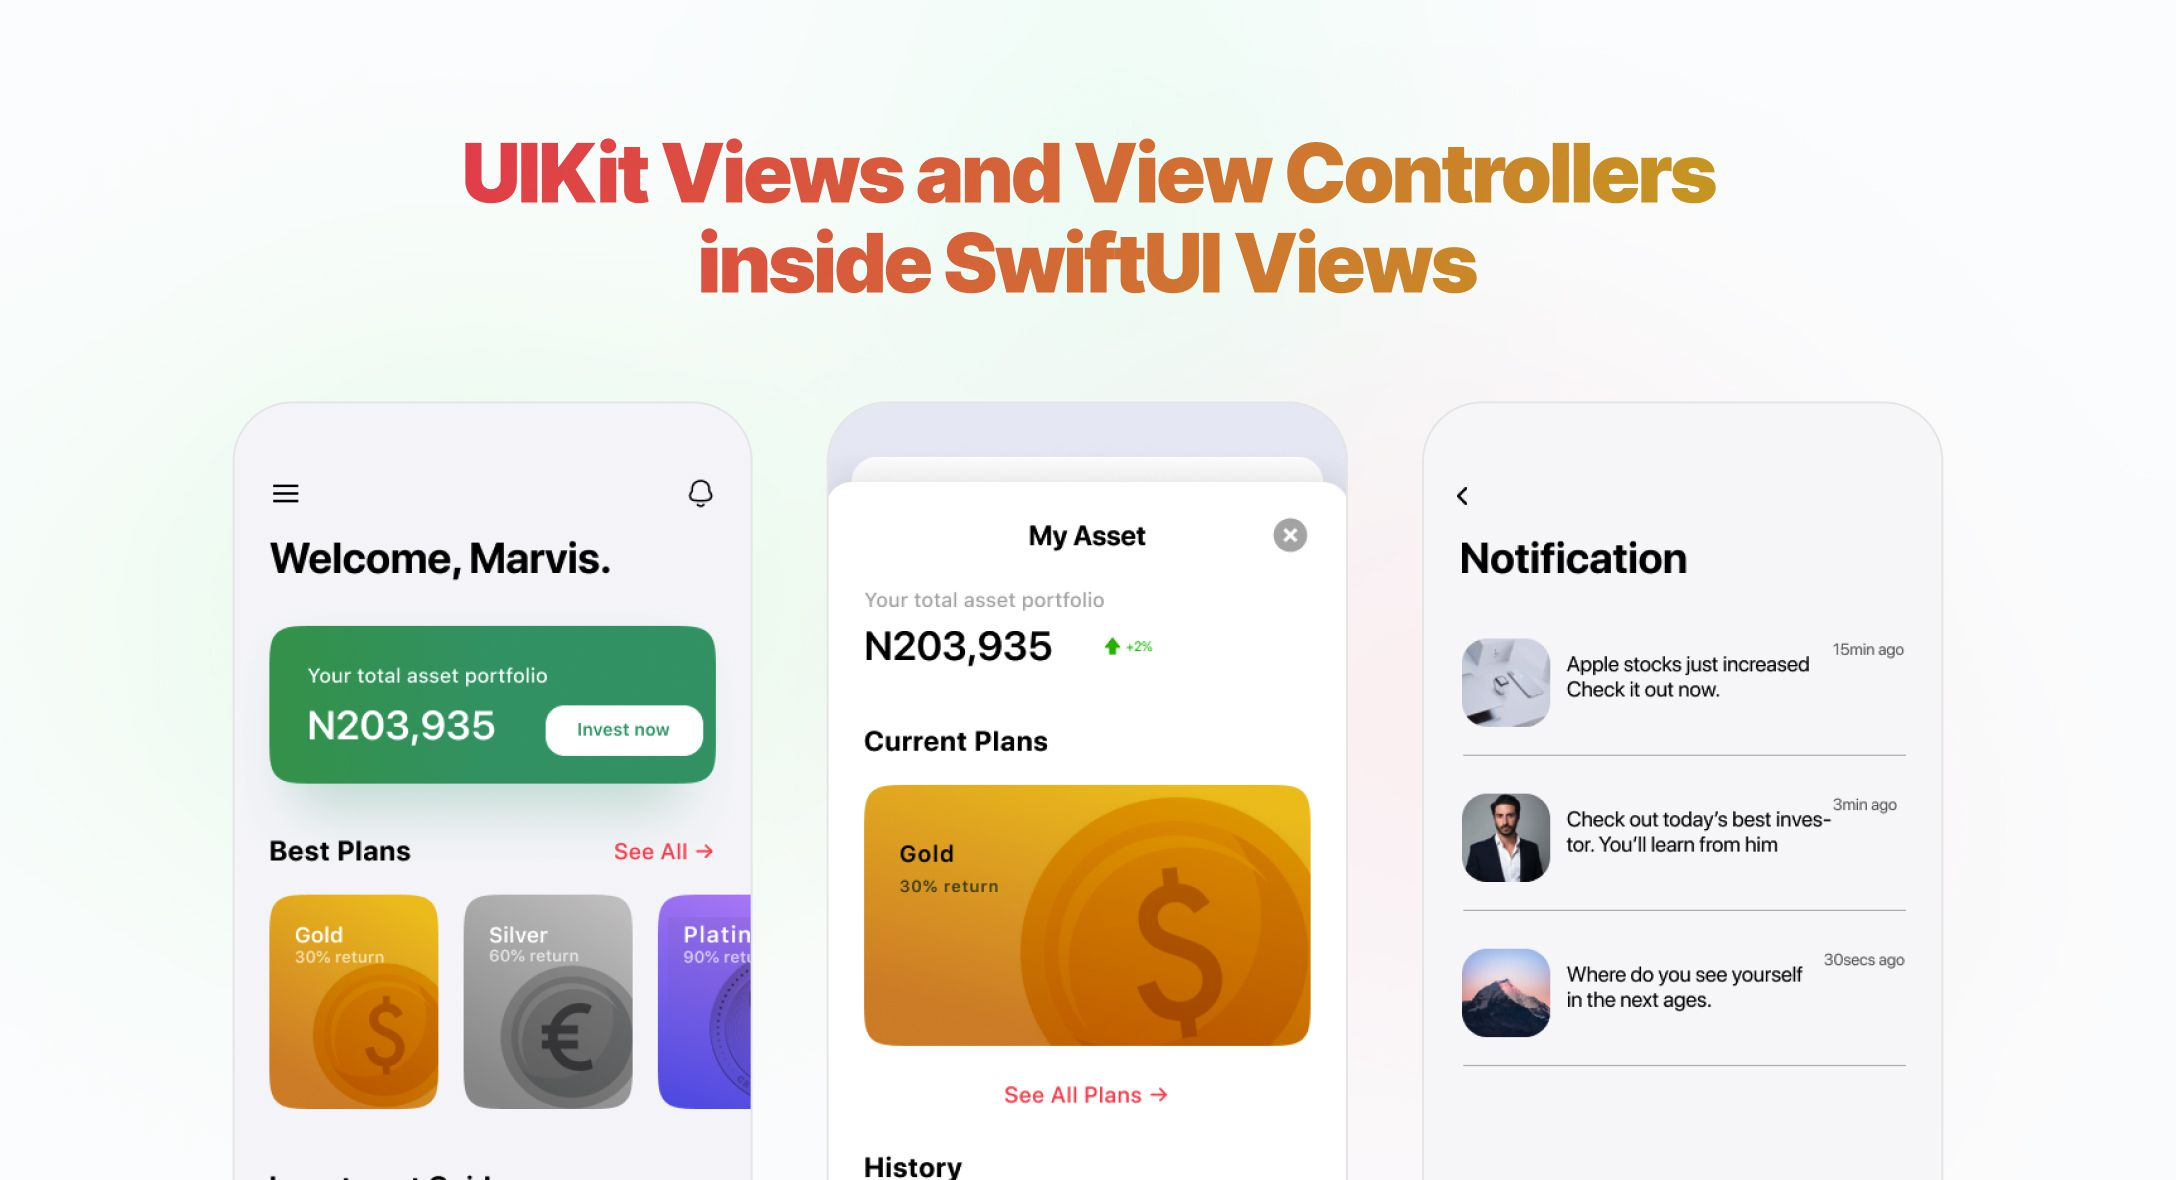 How to use UIKit Views and View Controllers inside SwiftUI Views